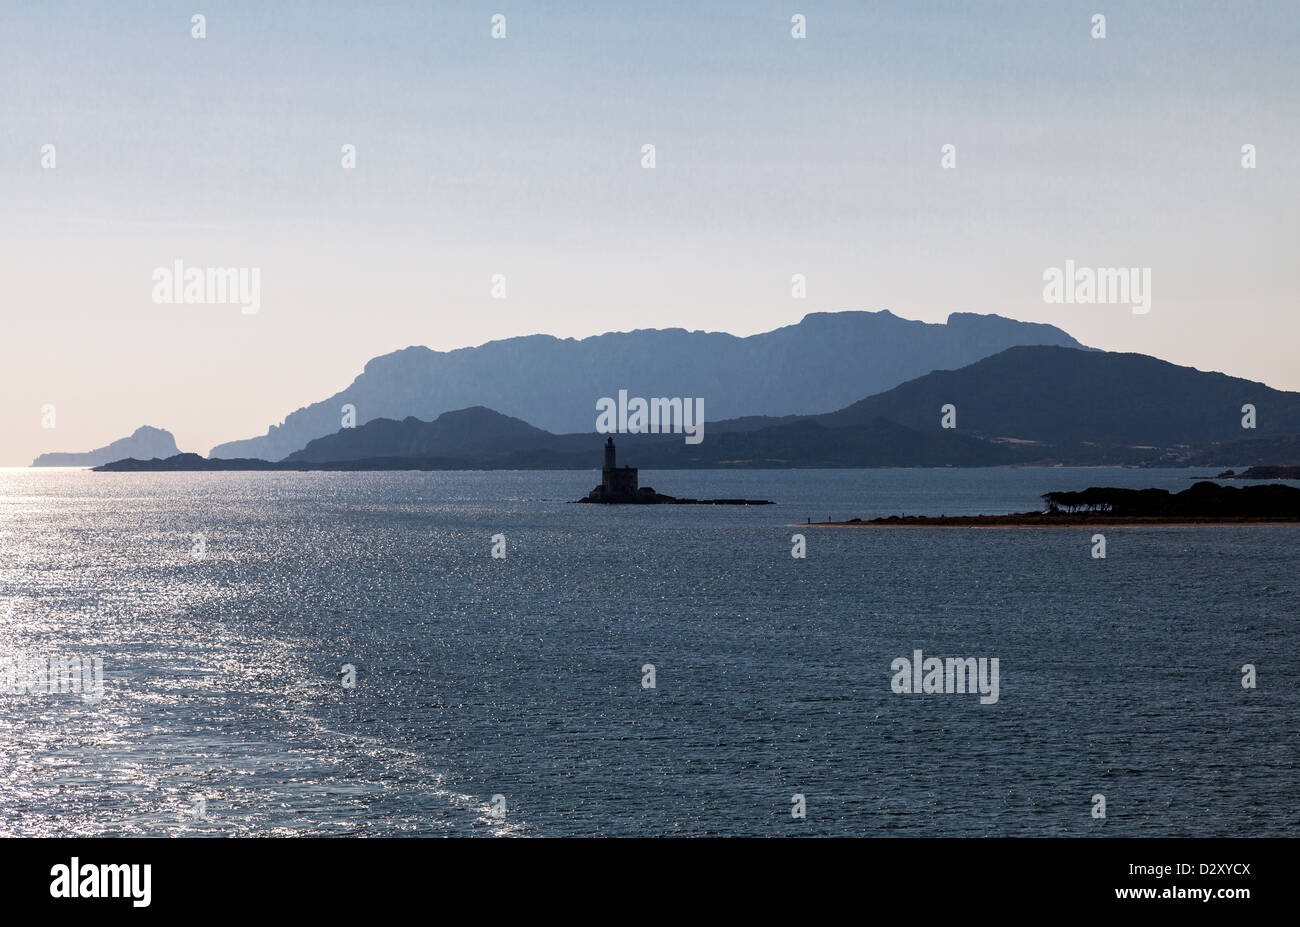 Italy, Sardinia, the beacon of the Olbia harbor - Stock Image